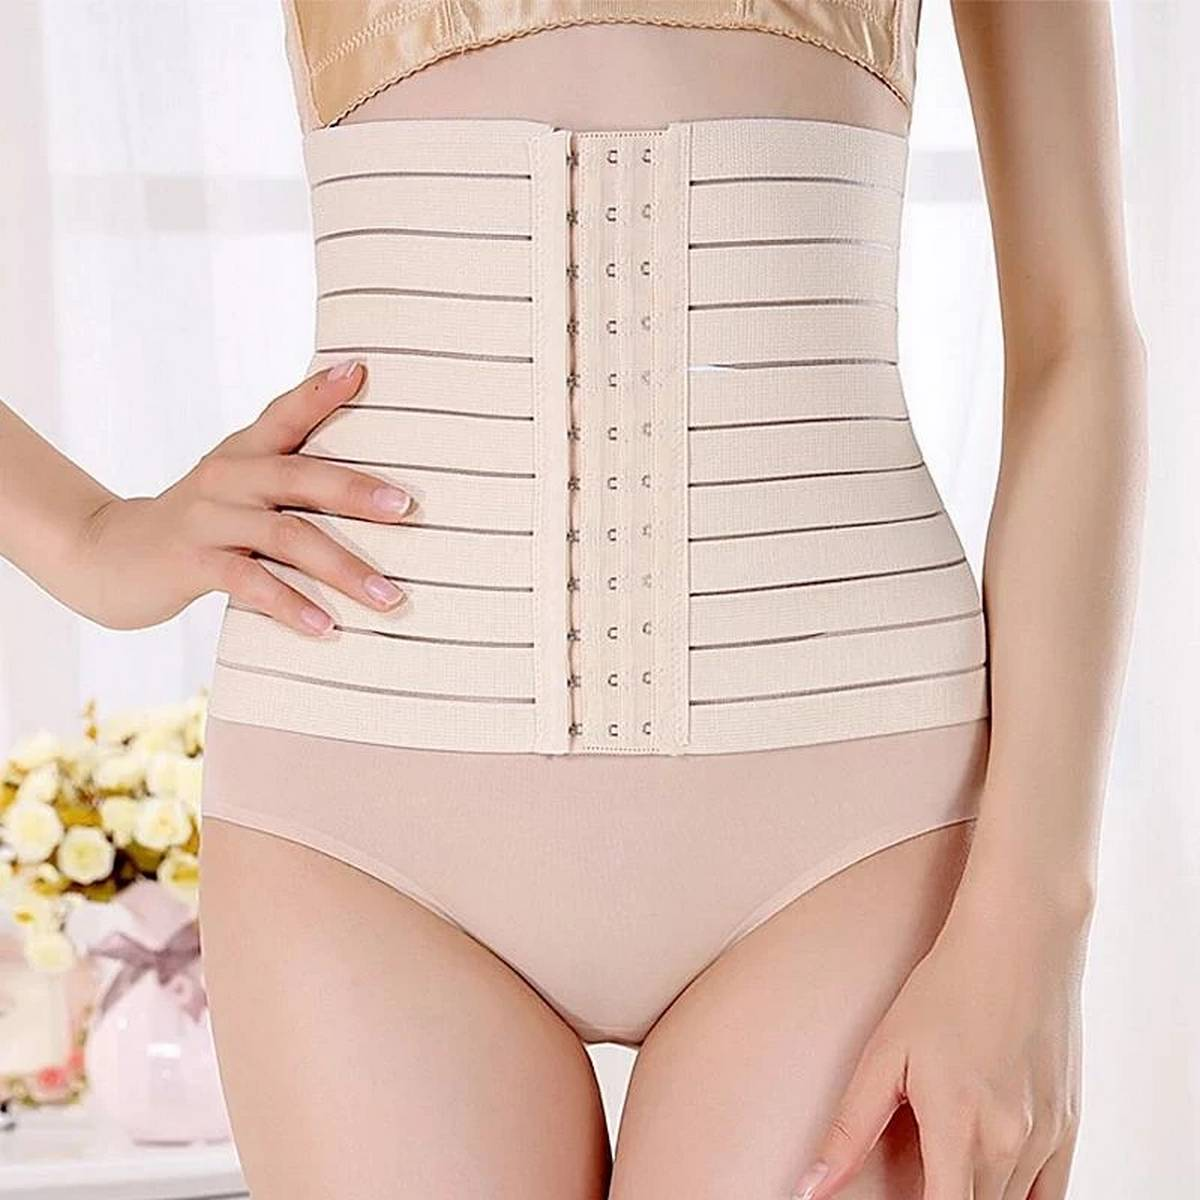 Loose Belly Shaper Tummy Shaper Trainer Belt with Hooks